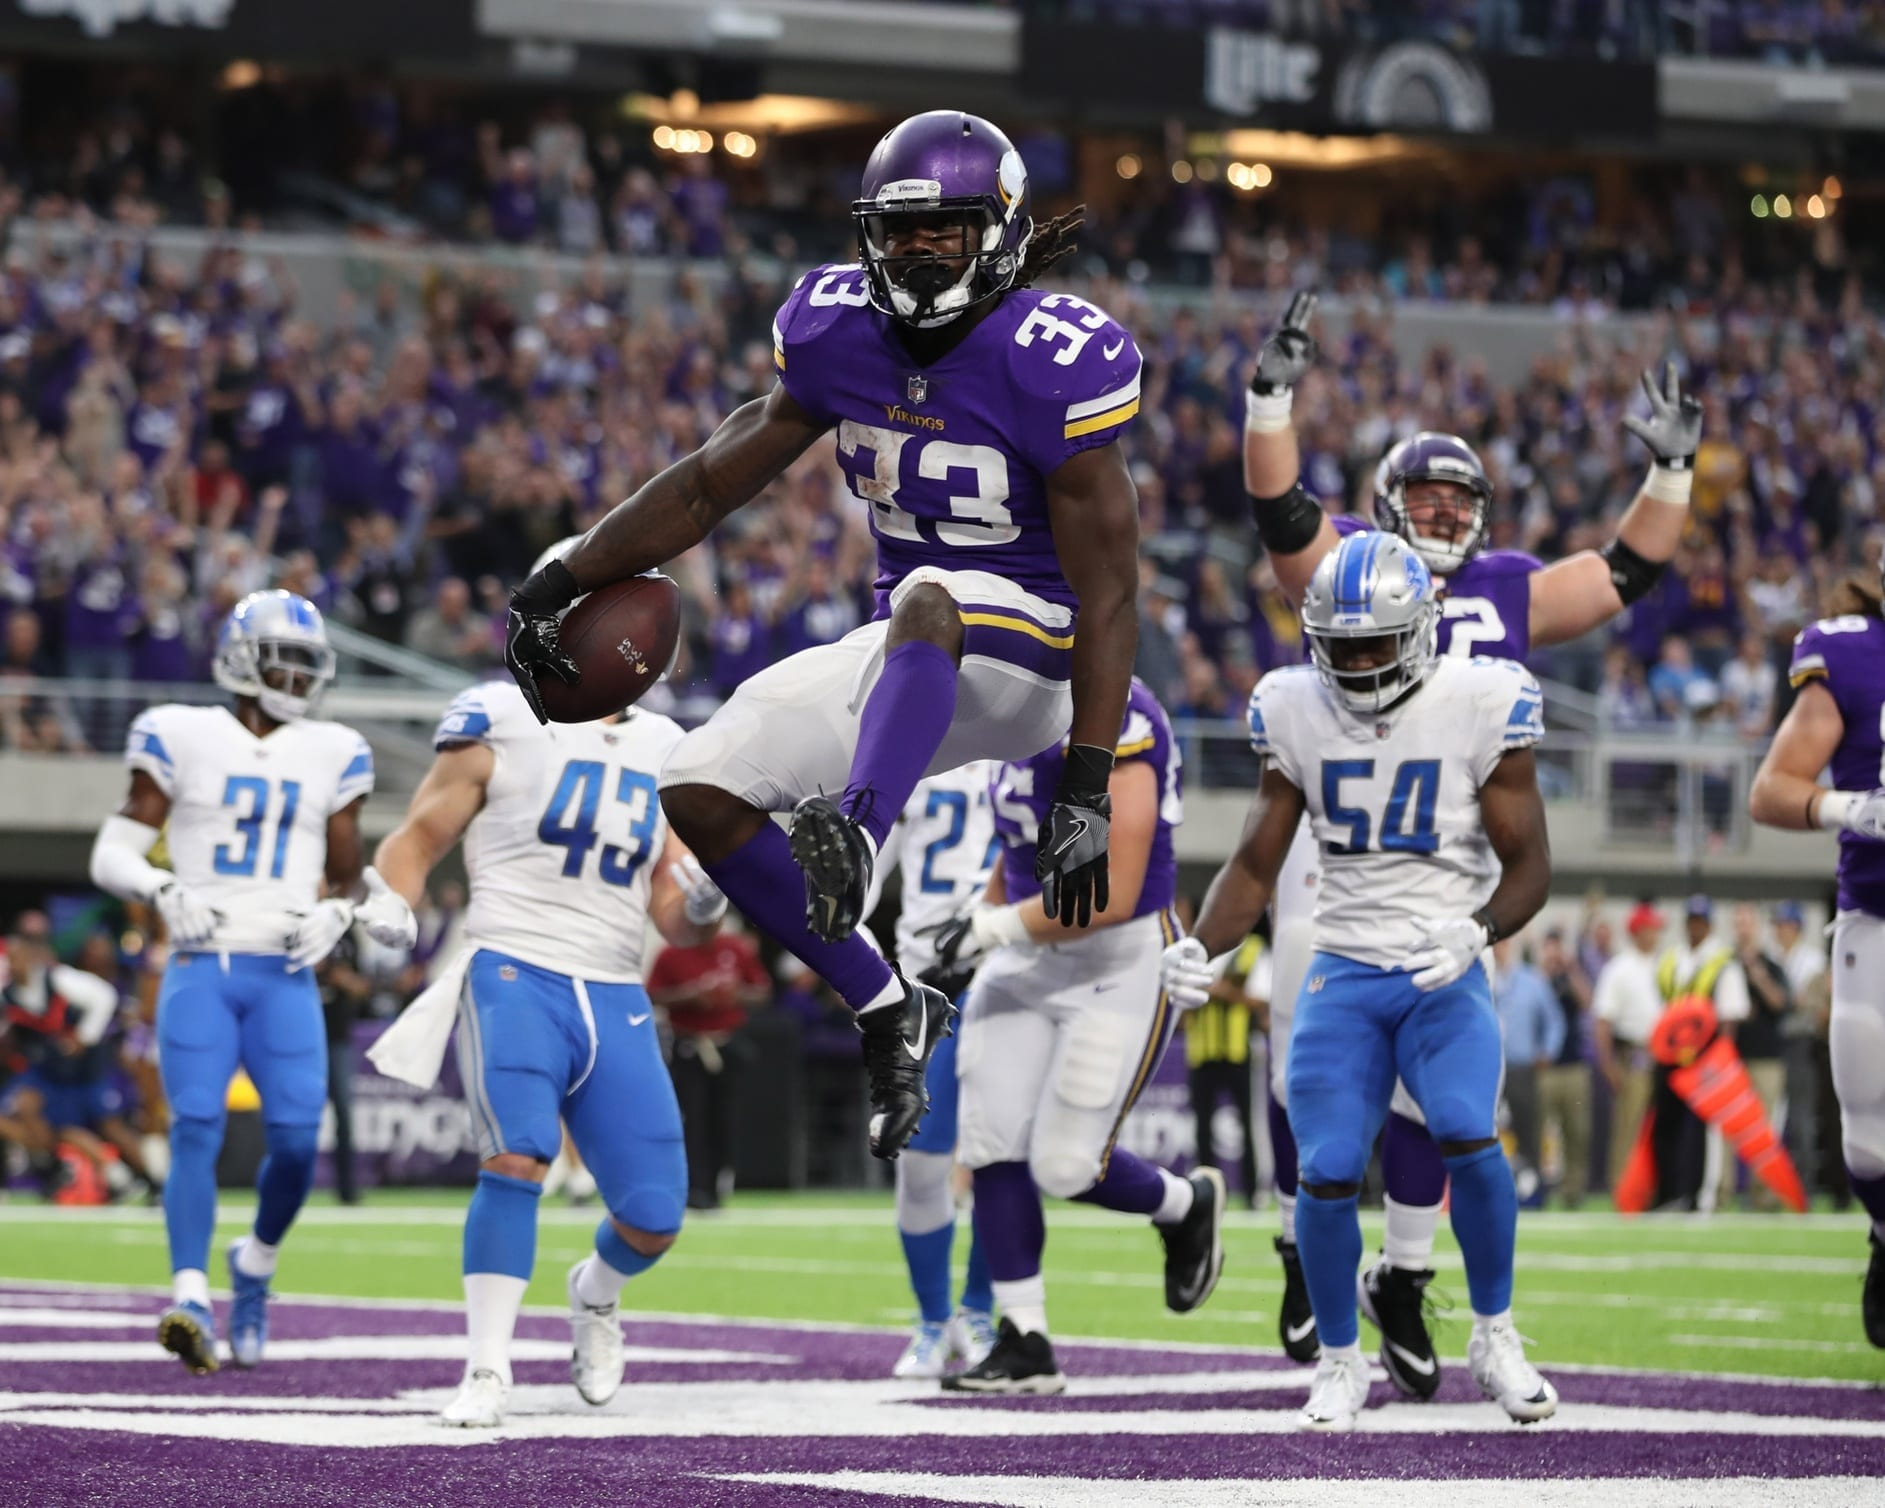 Vikings Place Rookie Rb Dalvin Cook On Injured Reserve